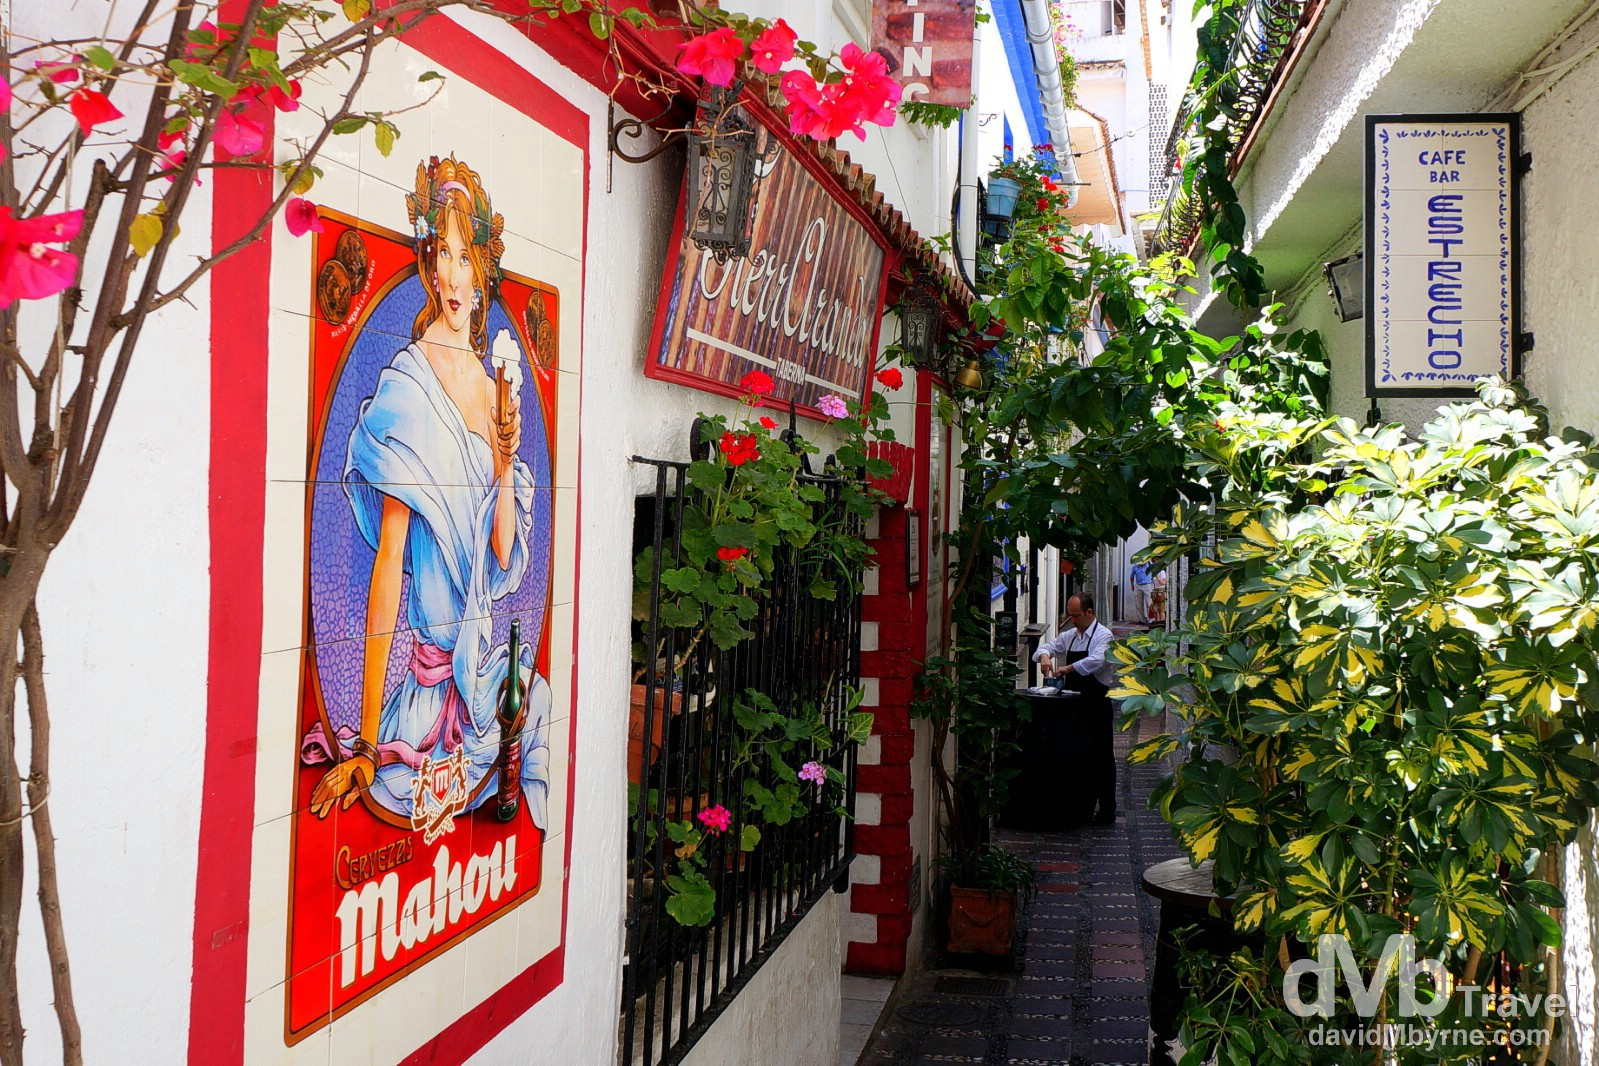 Calle Pantaleon, Marbella, Andalusia, Spain. June 7th, 2014.